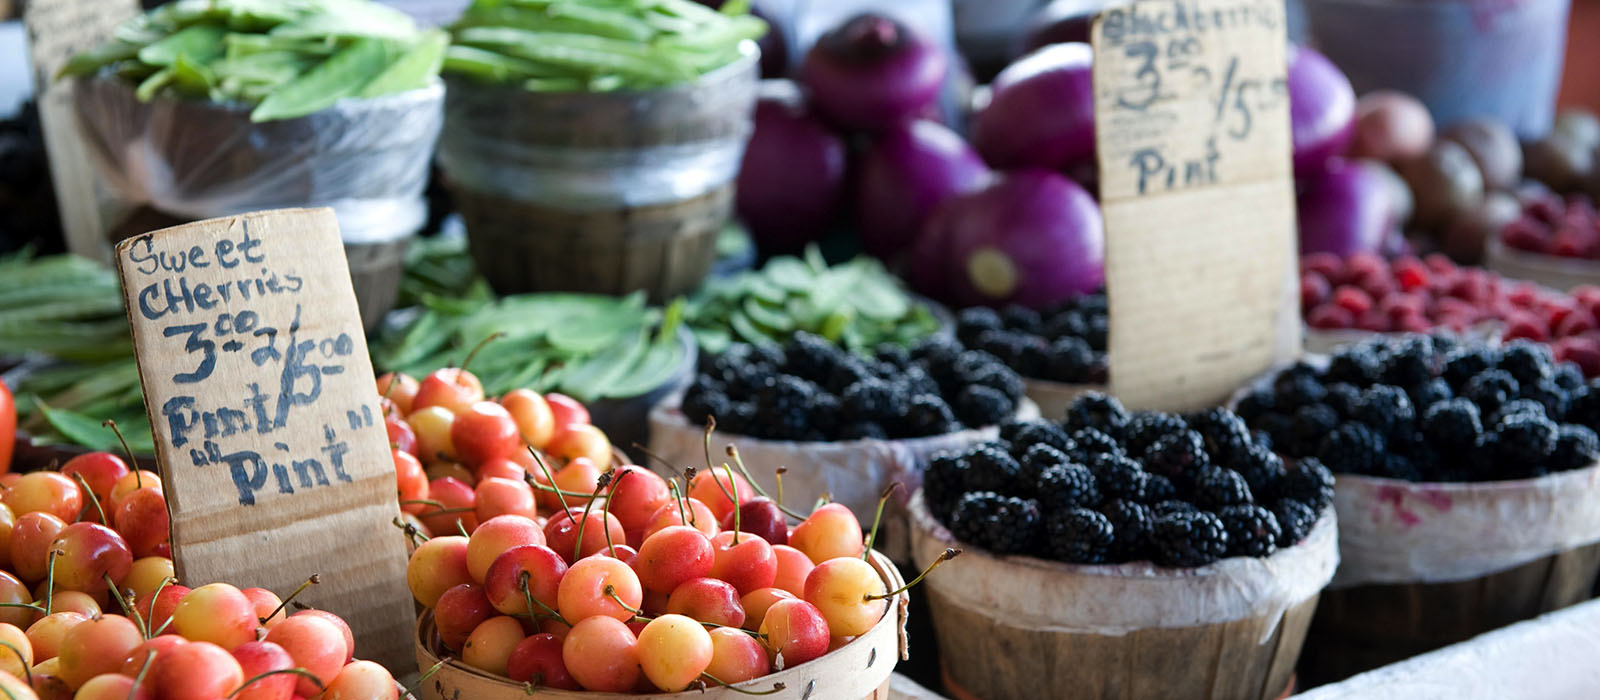 portland-relocation_0005_bigstock-Fruits-And-Vegetables-At-An-Ou-3292393